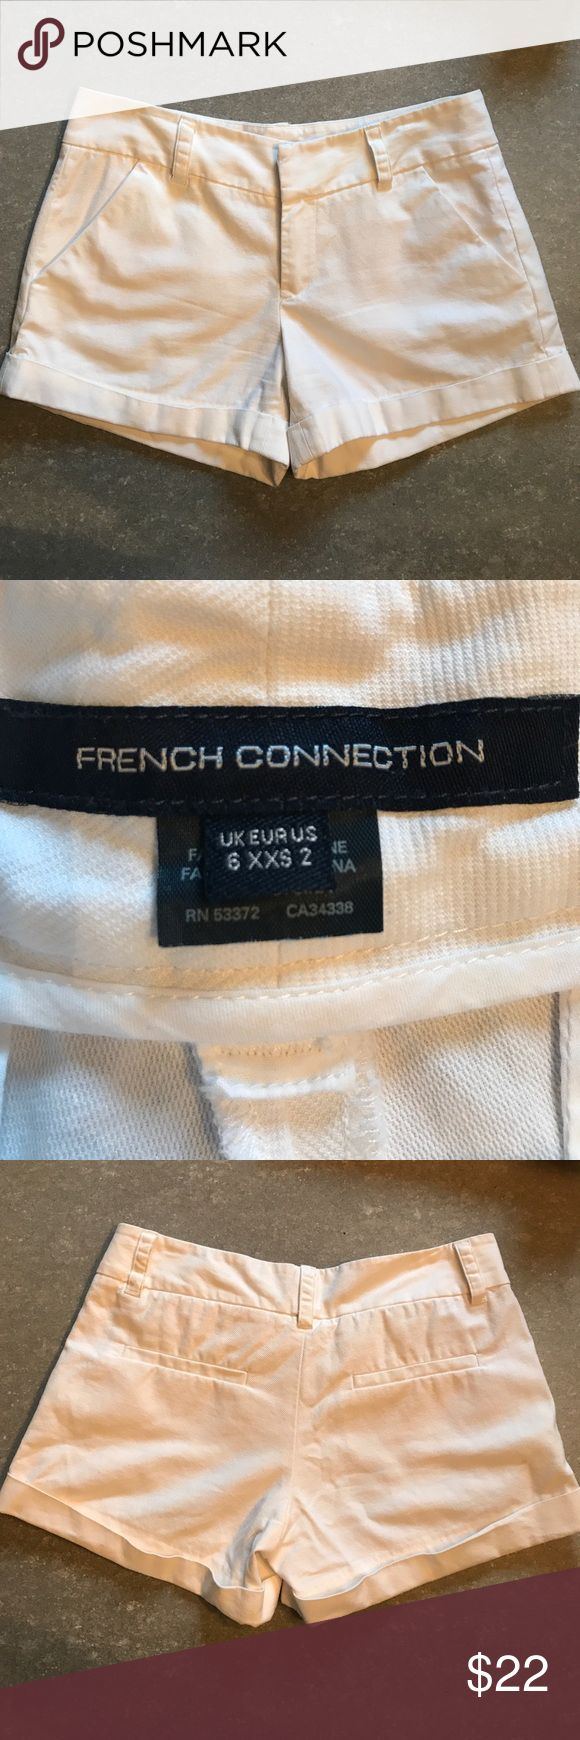 White French Connection Shorts Get ready for summer in these perfect white cotton shorts. US Size 2. French Connection runs small, These fit closer to a size 0. French Connection Shorts